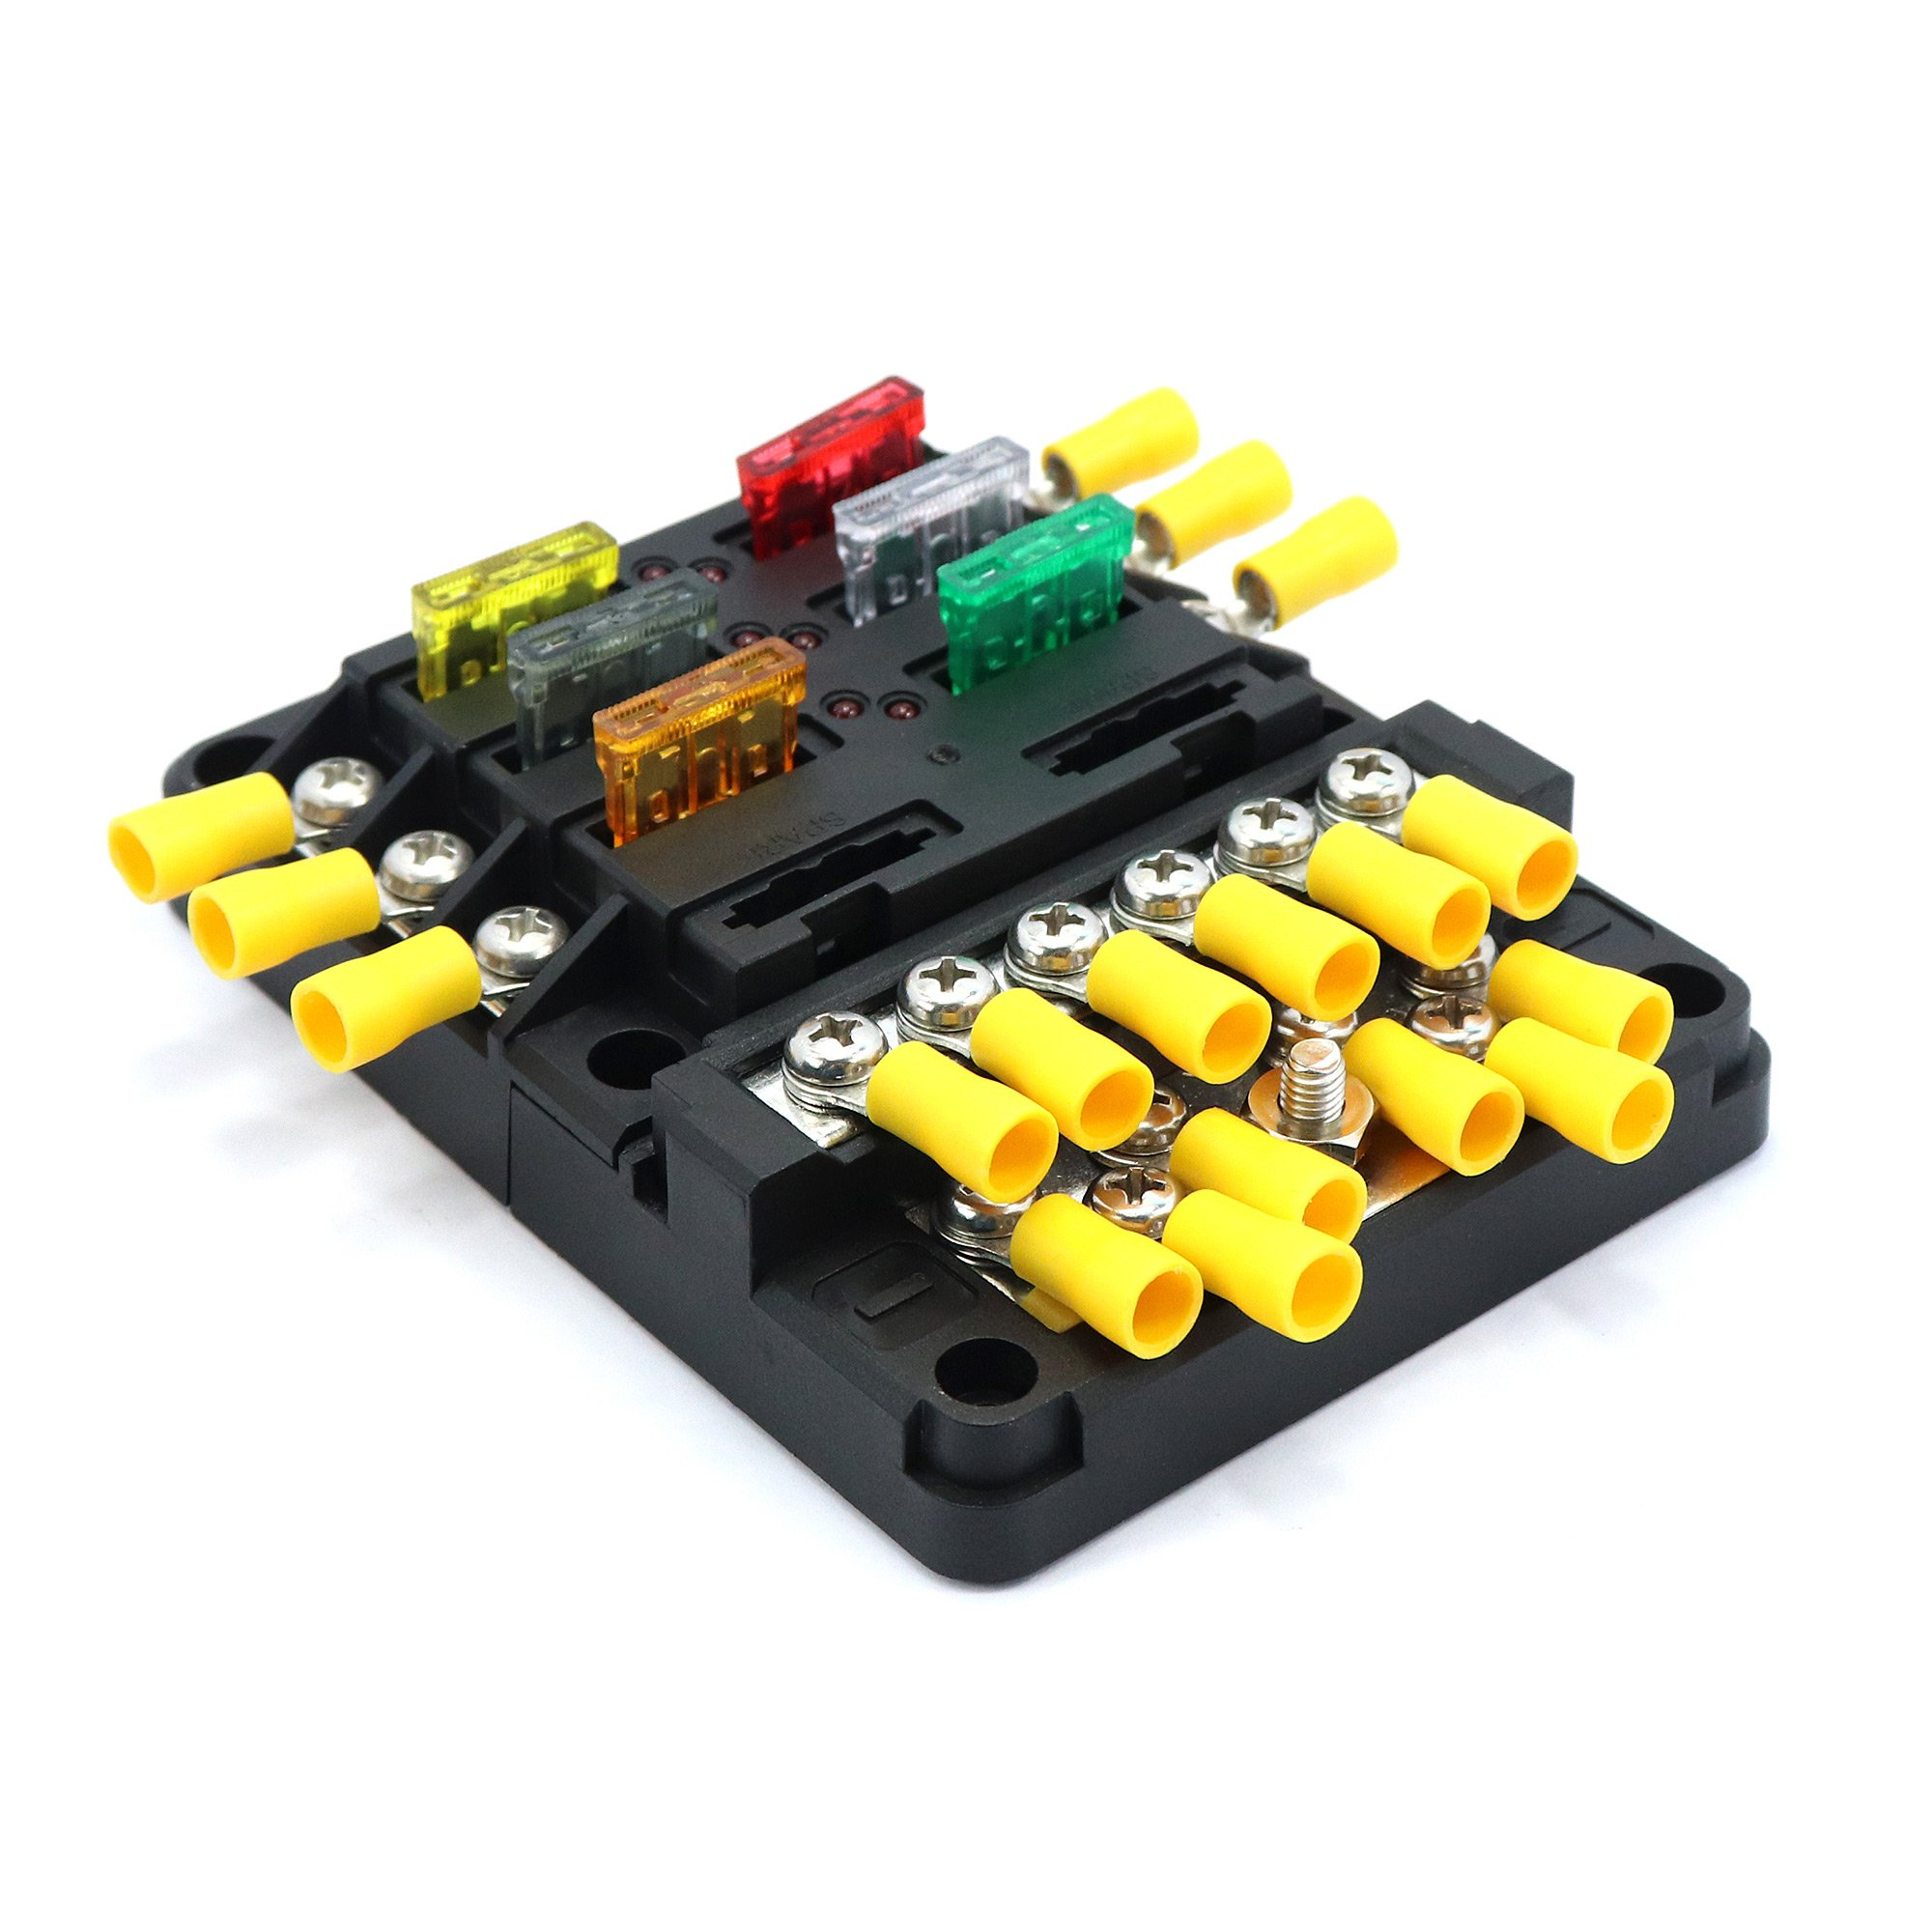 Blade Fuse Block Box Holder 6 Circuits ATP and Negative Bus Bar With LED Indicator for Blown Fuse Suitable For Automotive Marine Boats with 5A/10A/15A/20A /25A/30A Weiruixin